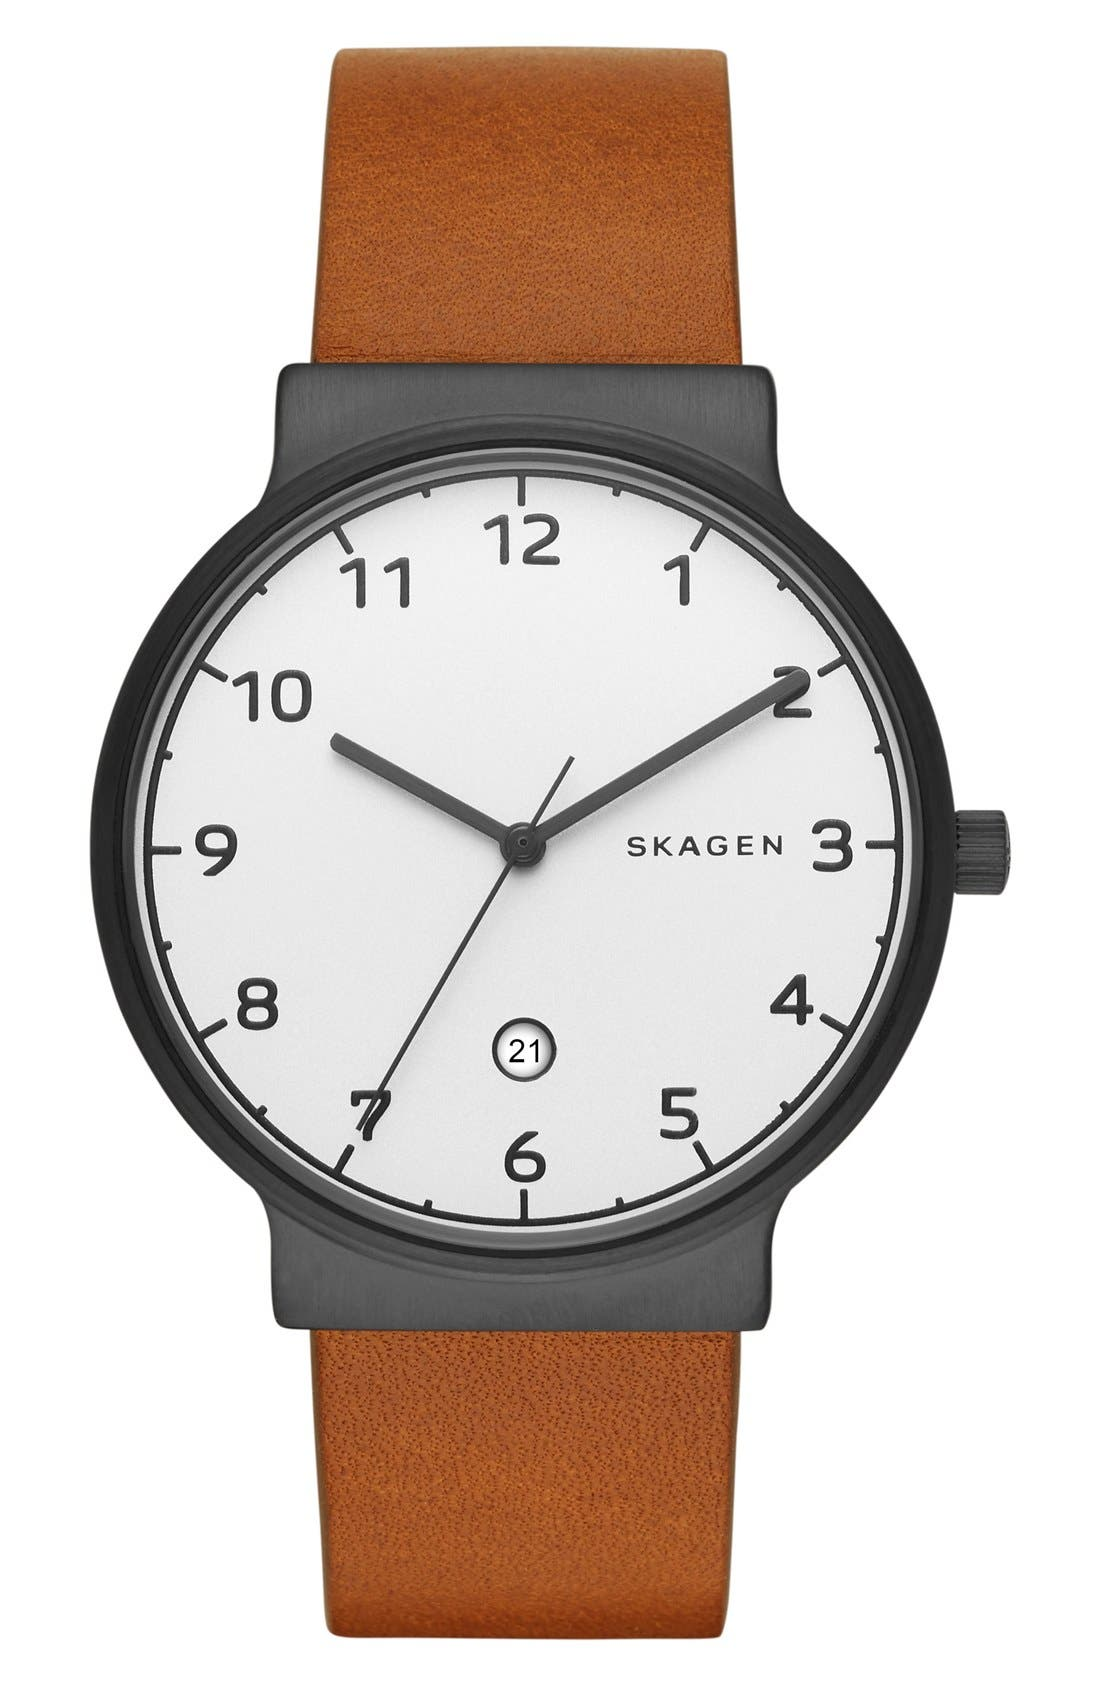 Main Image - Skagen 'Ancher' Round Leather Strap Watch, 40mm